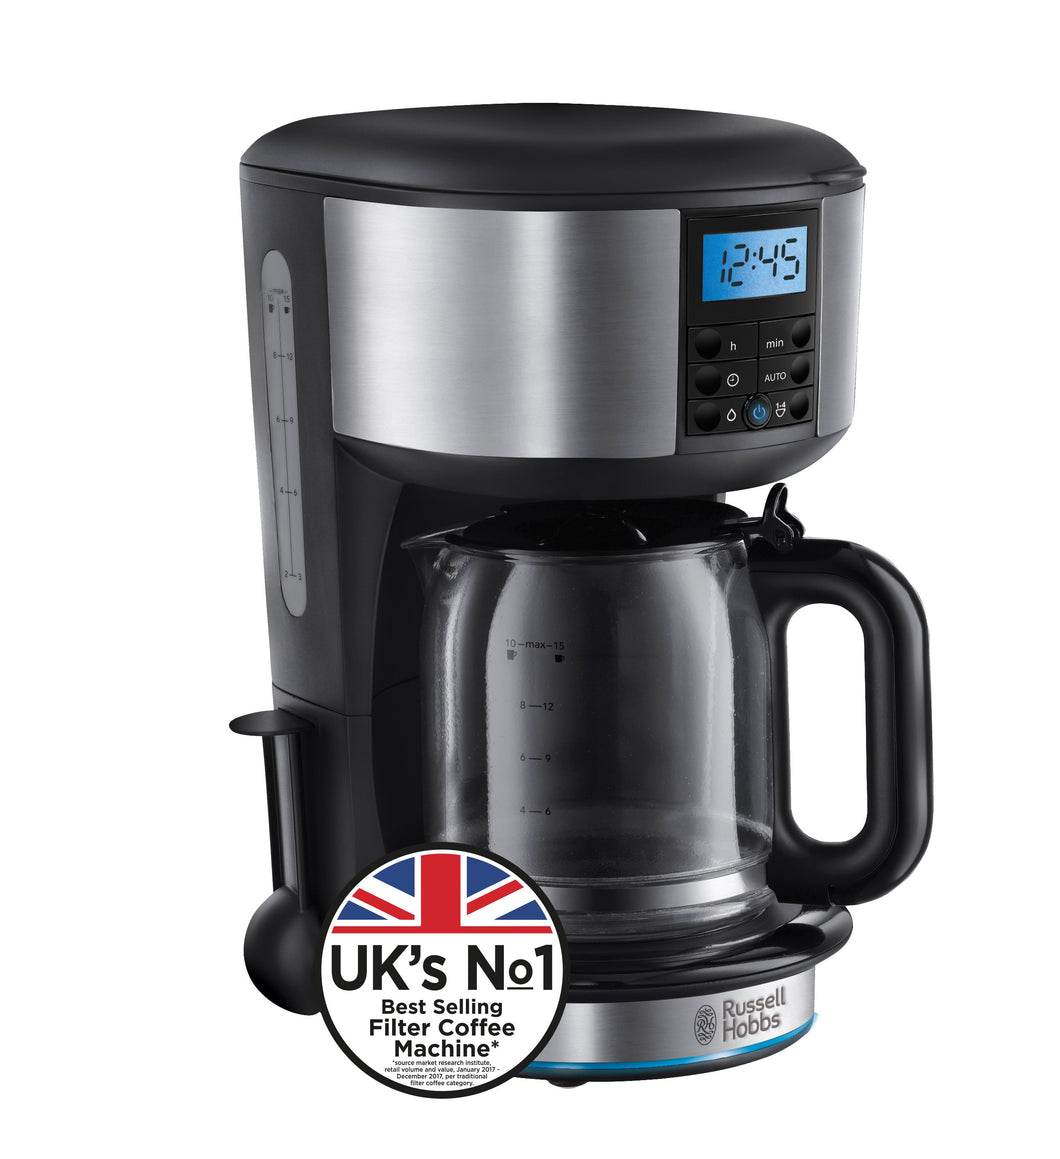 RUSSELL HOBBS 20680 BUCKINGHAM FILTER COFFEE MAKER